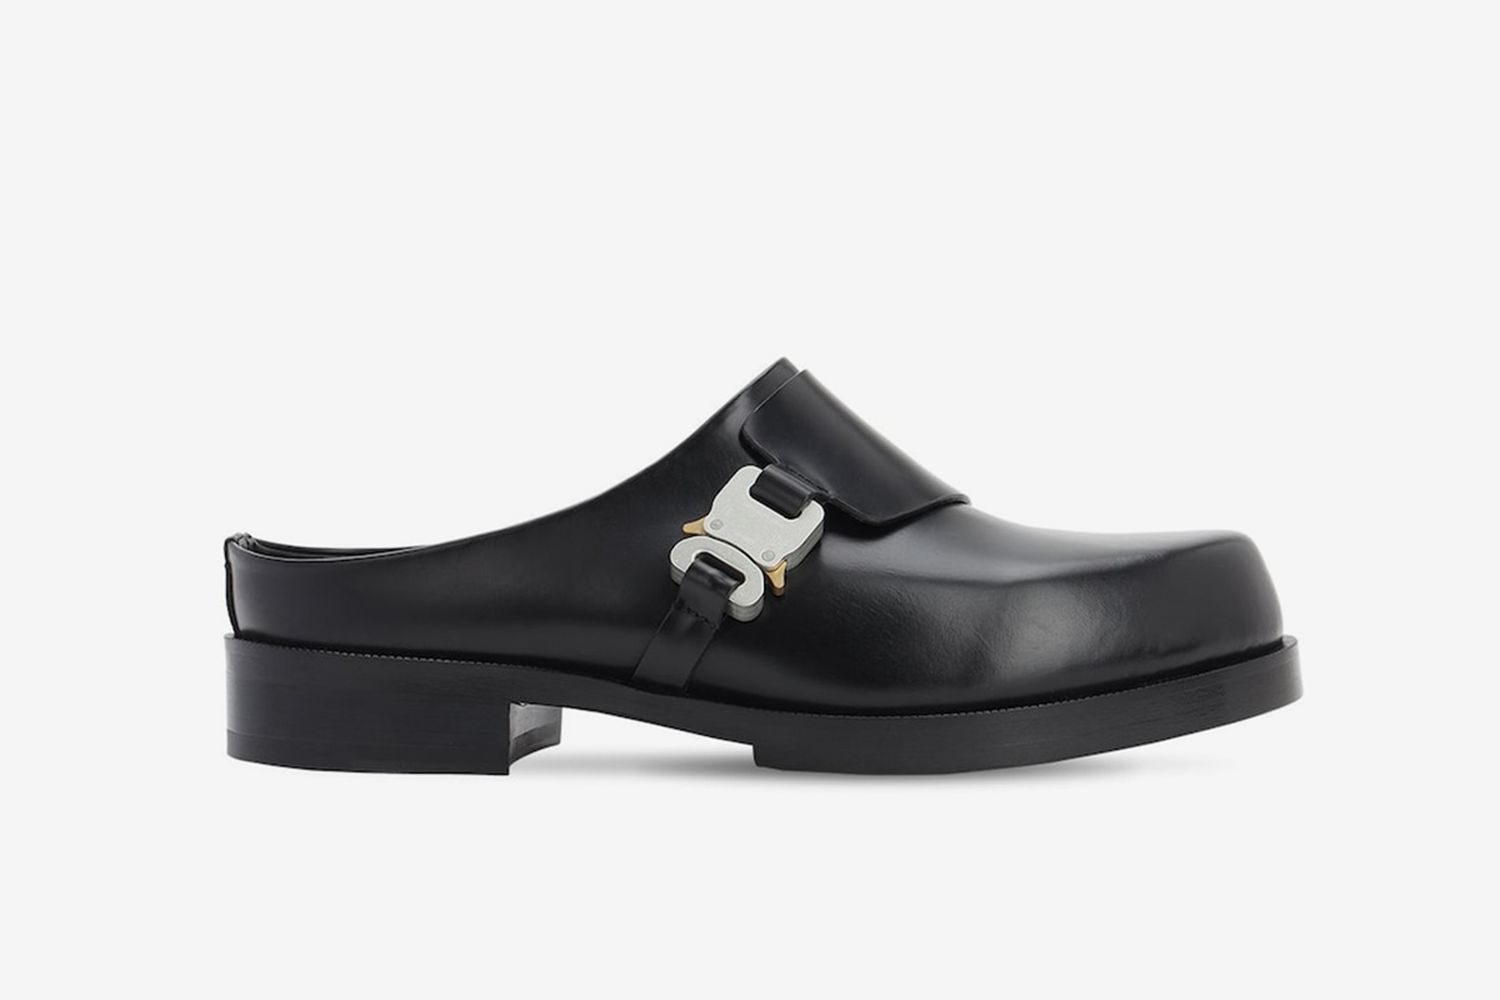 Clogs With Buckles